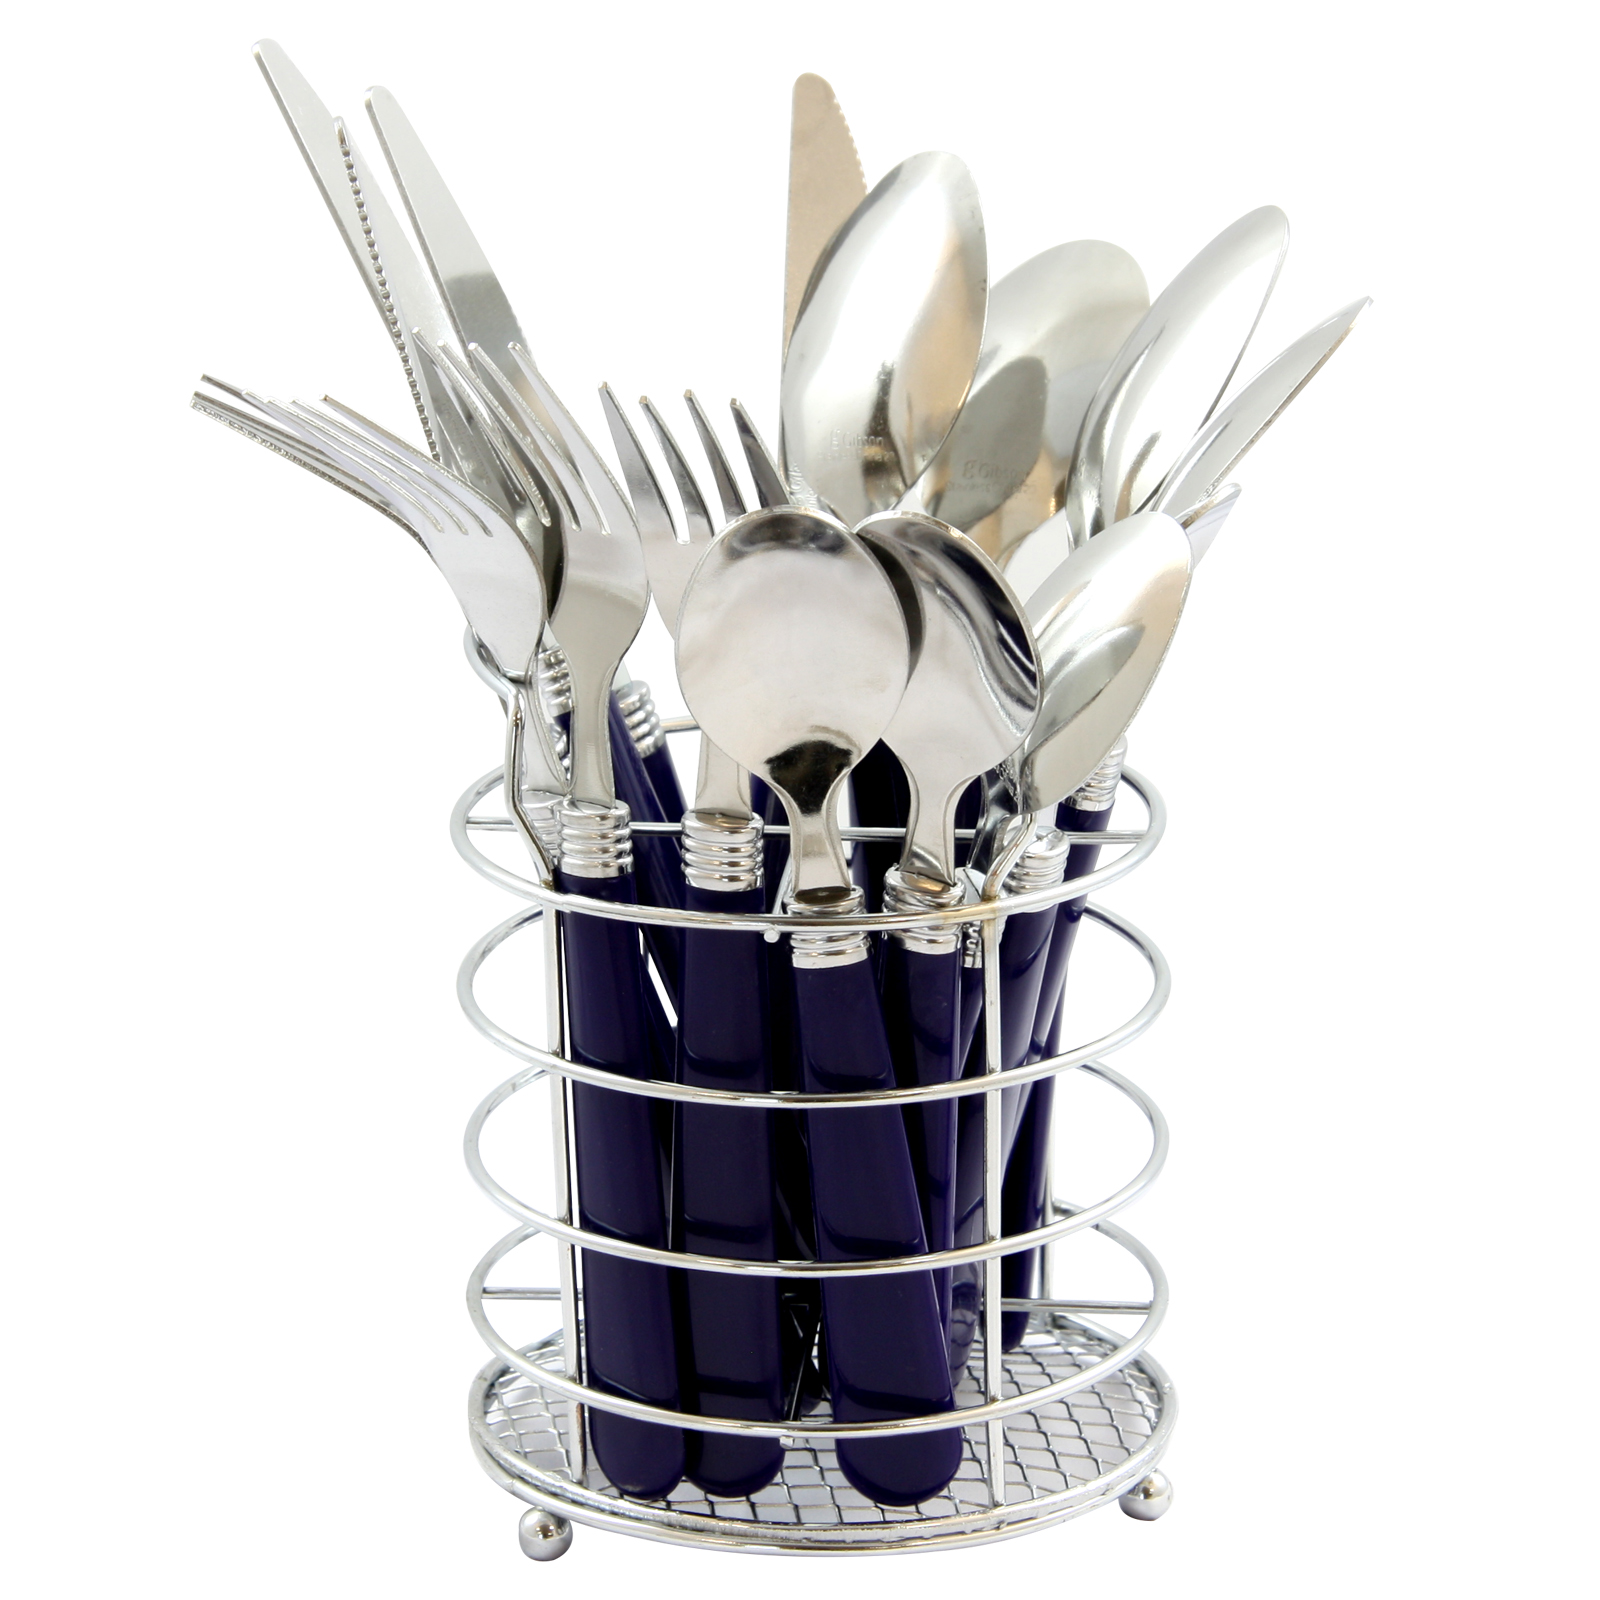 Gibson Home Sensations II 16-Piece Flatware Set with Wire Caddy